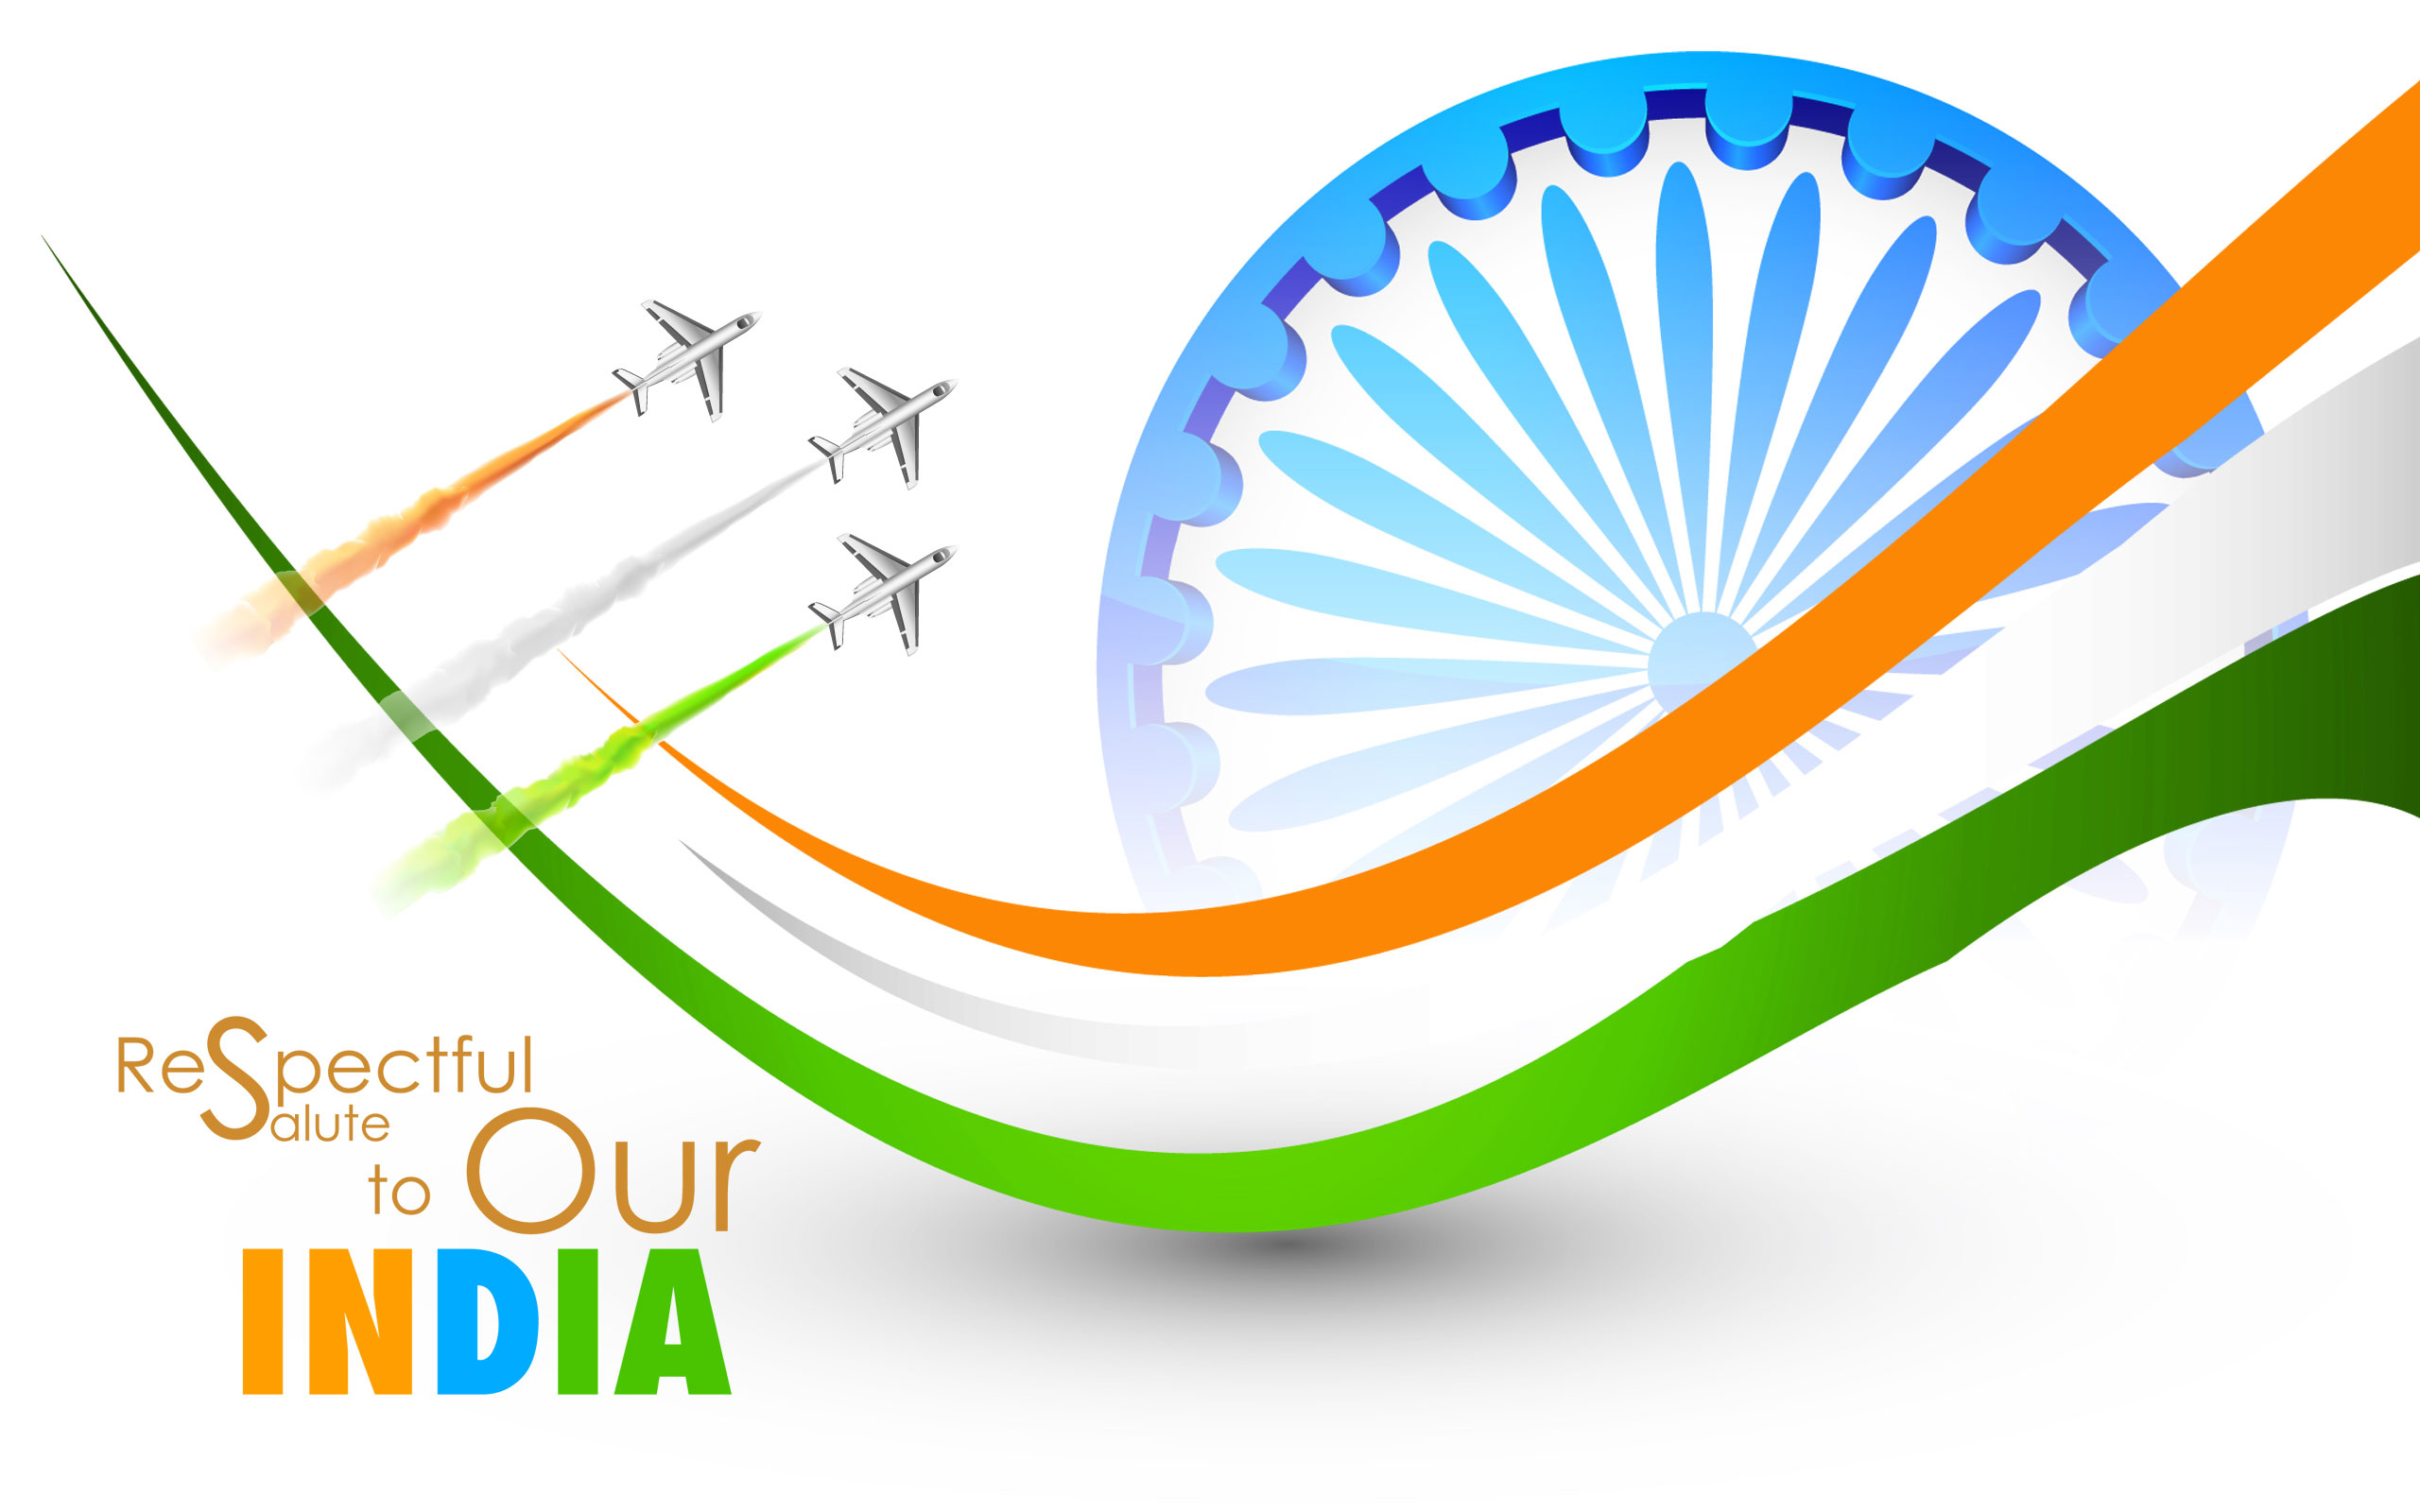 Indian Flag Images Hd720p: Indian Flag HD Images Wallpapers Free Download